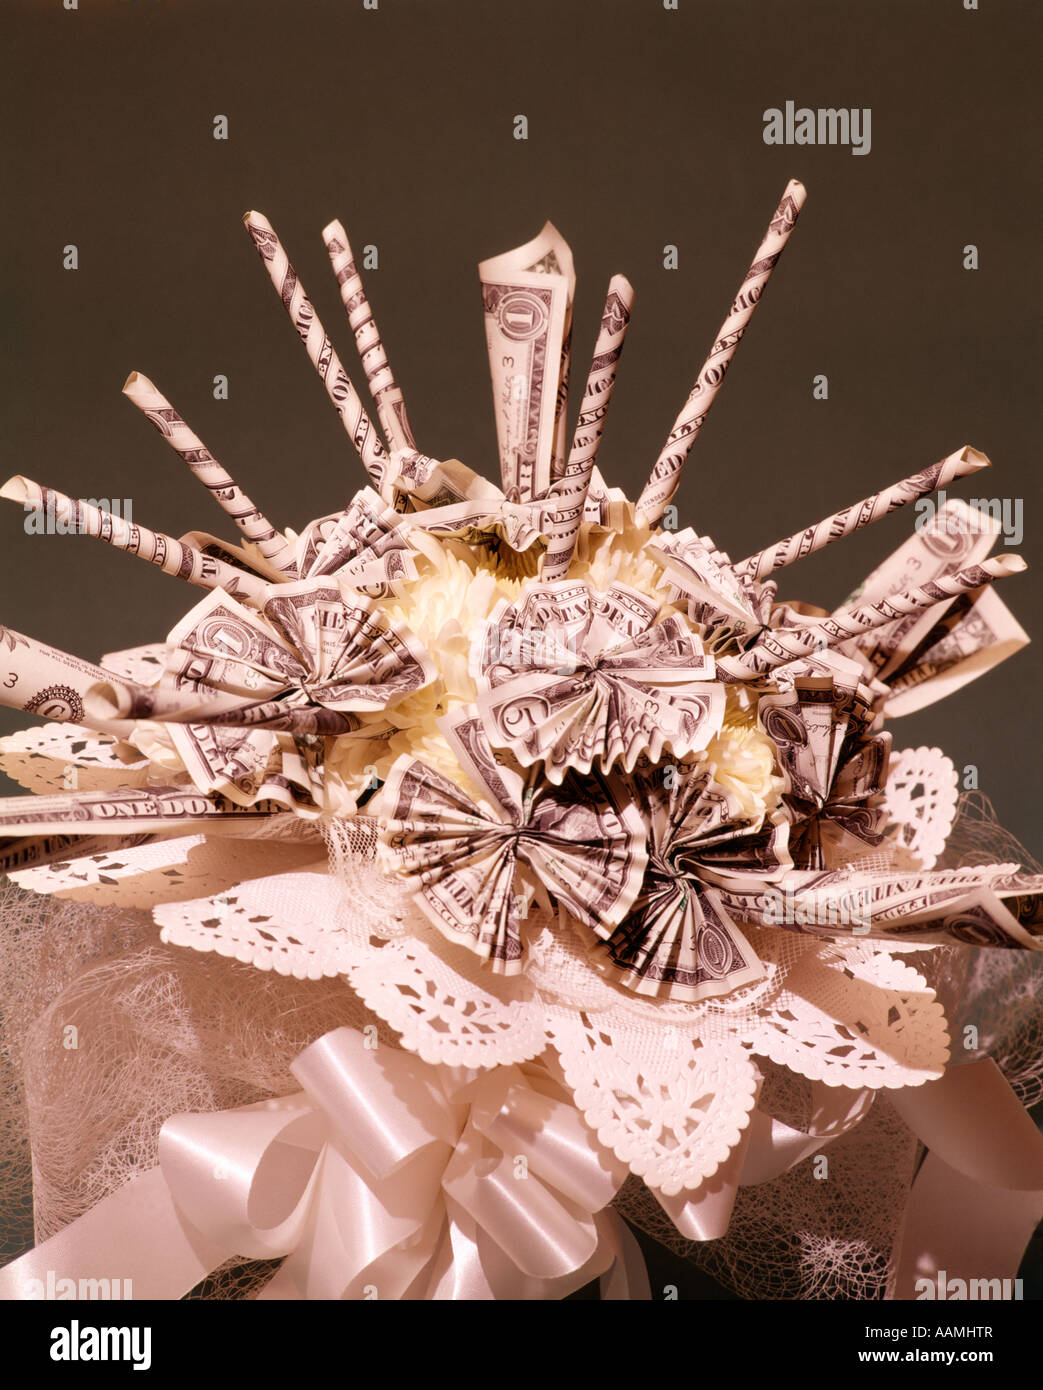 Bridal bouquet made up of money marriage finances wedding gift bridal bouquet made up of money marriage finances wedding gift finance financial american dollars economy negle Gallery